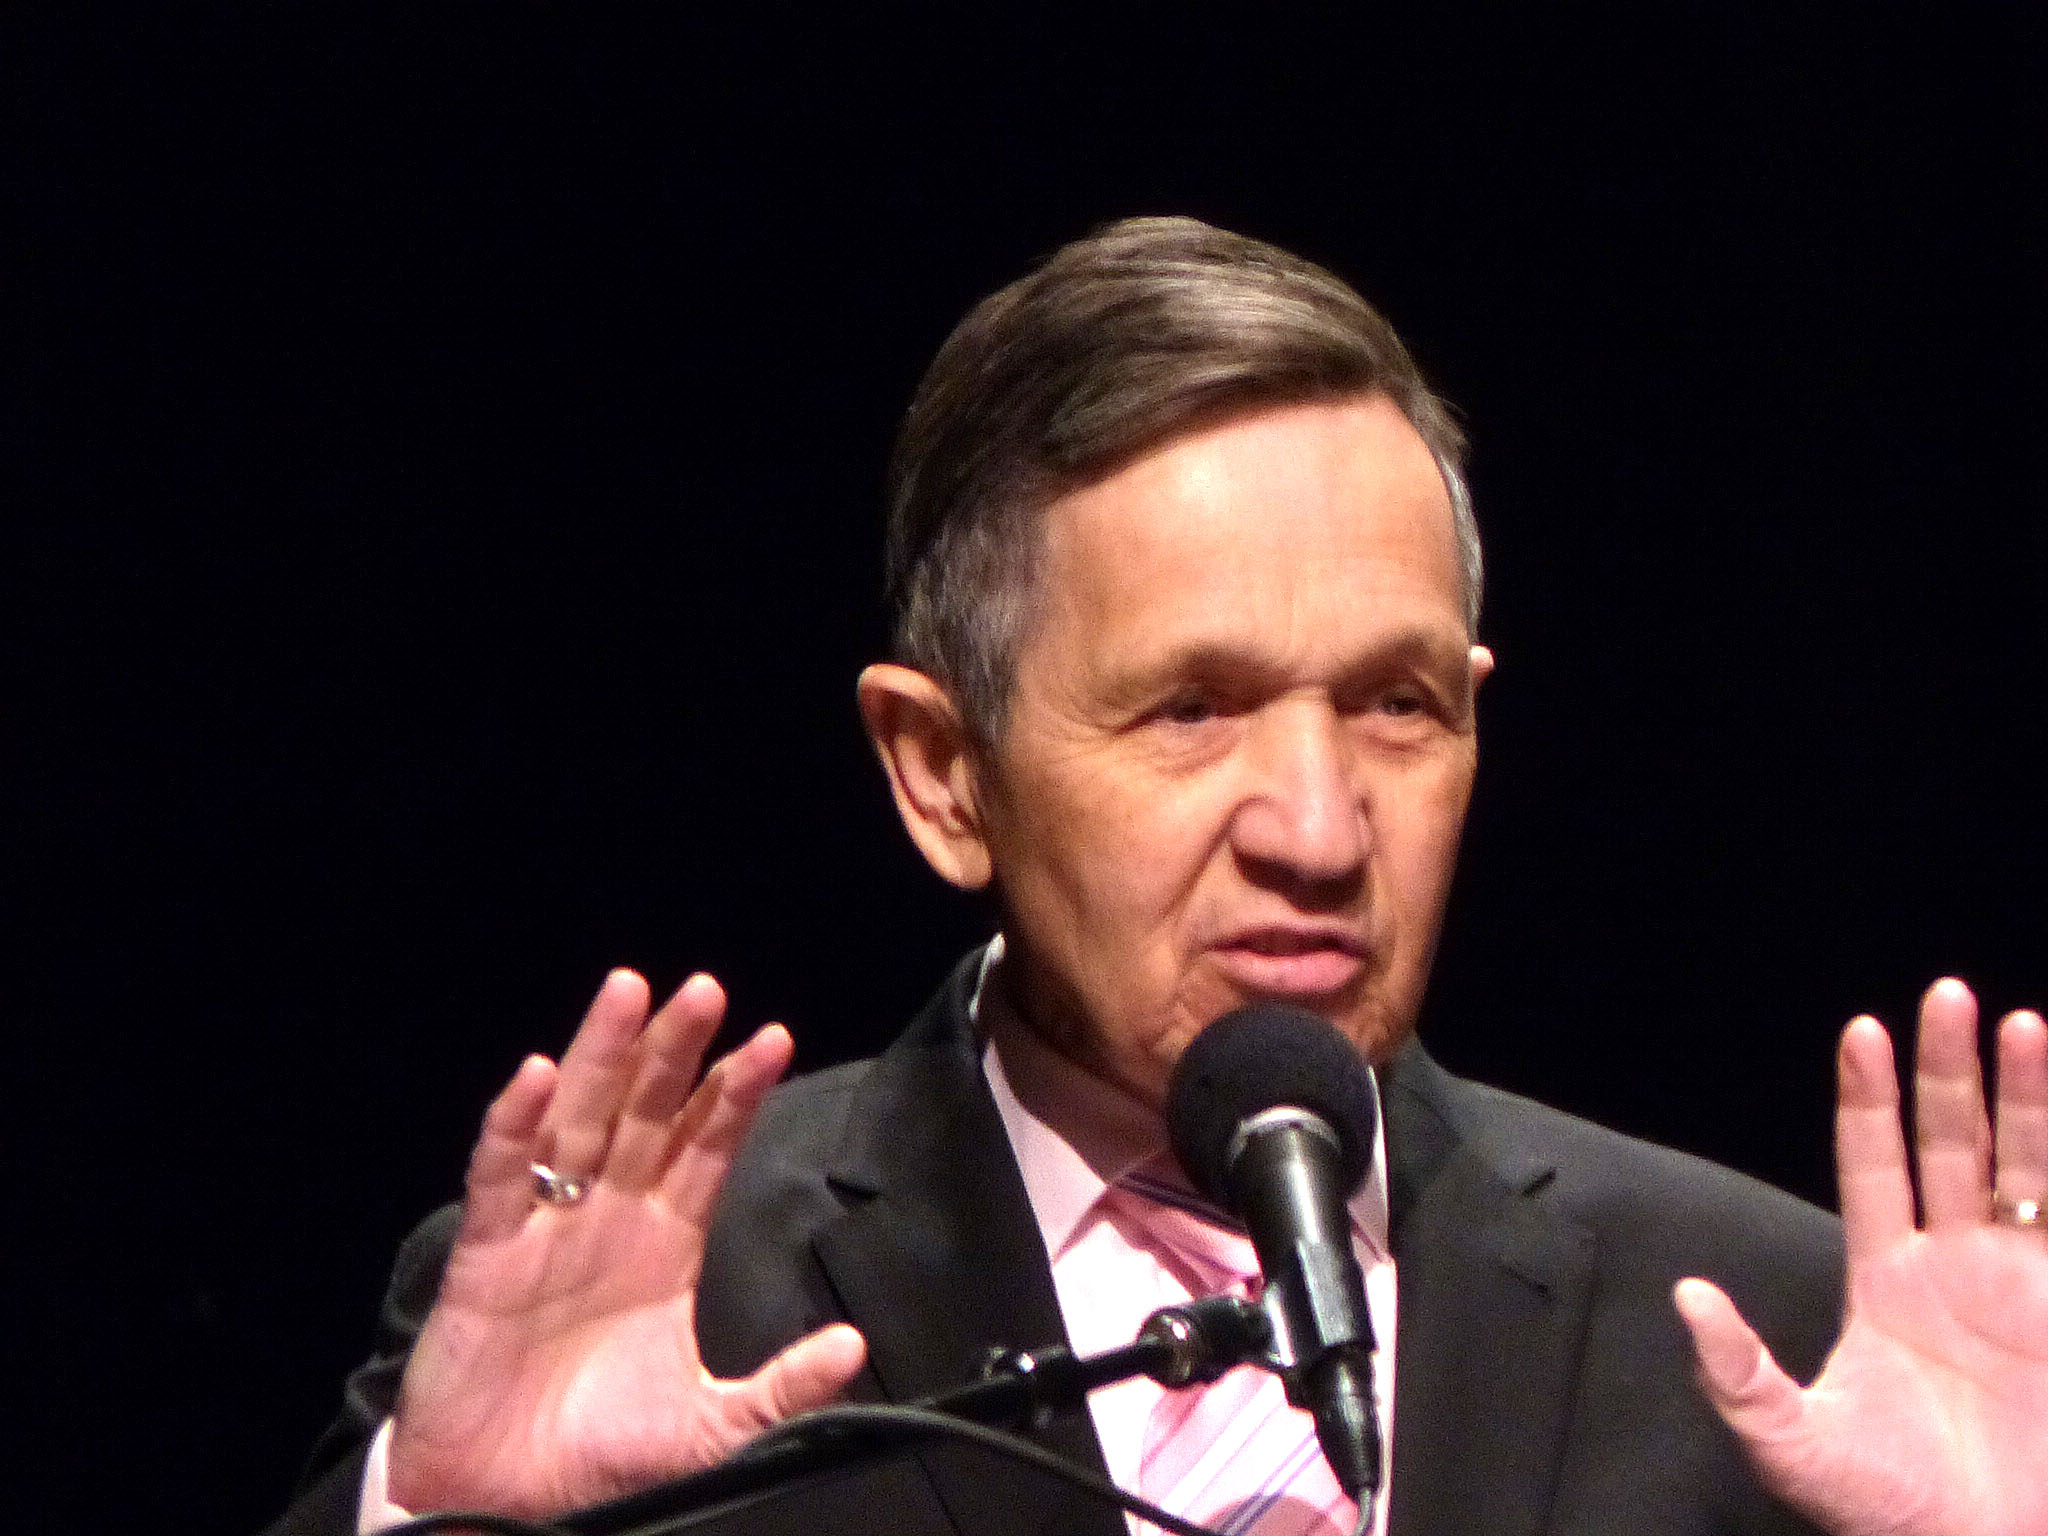 Kucinich wants to eliminate oil and gas drilling in Ohio